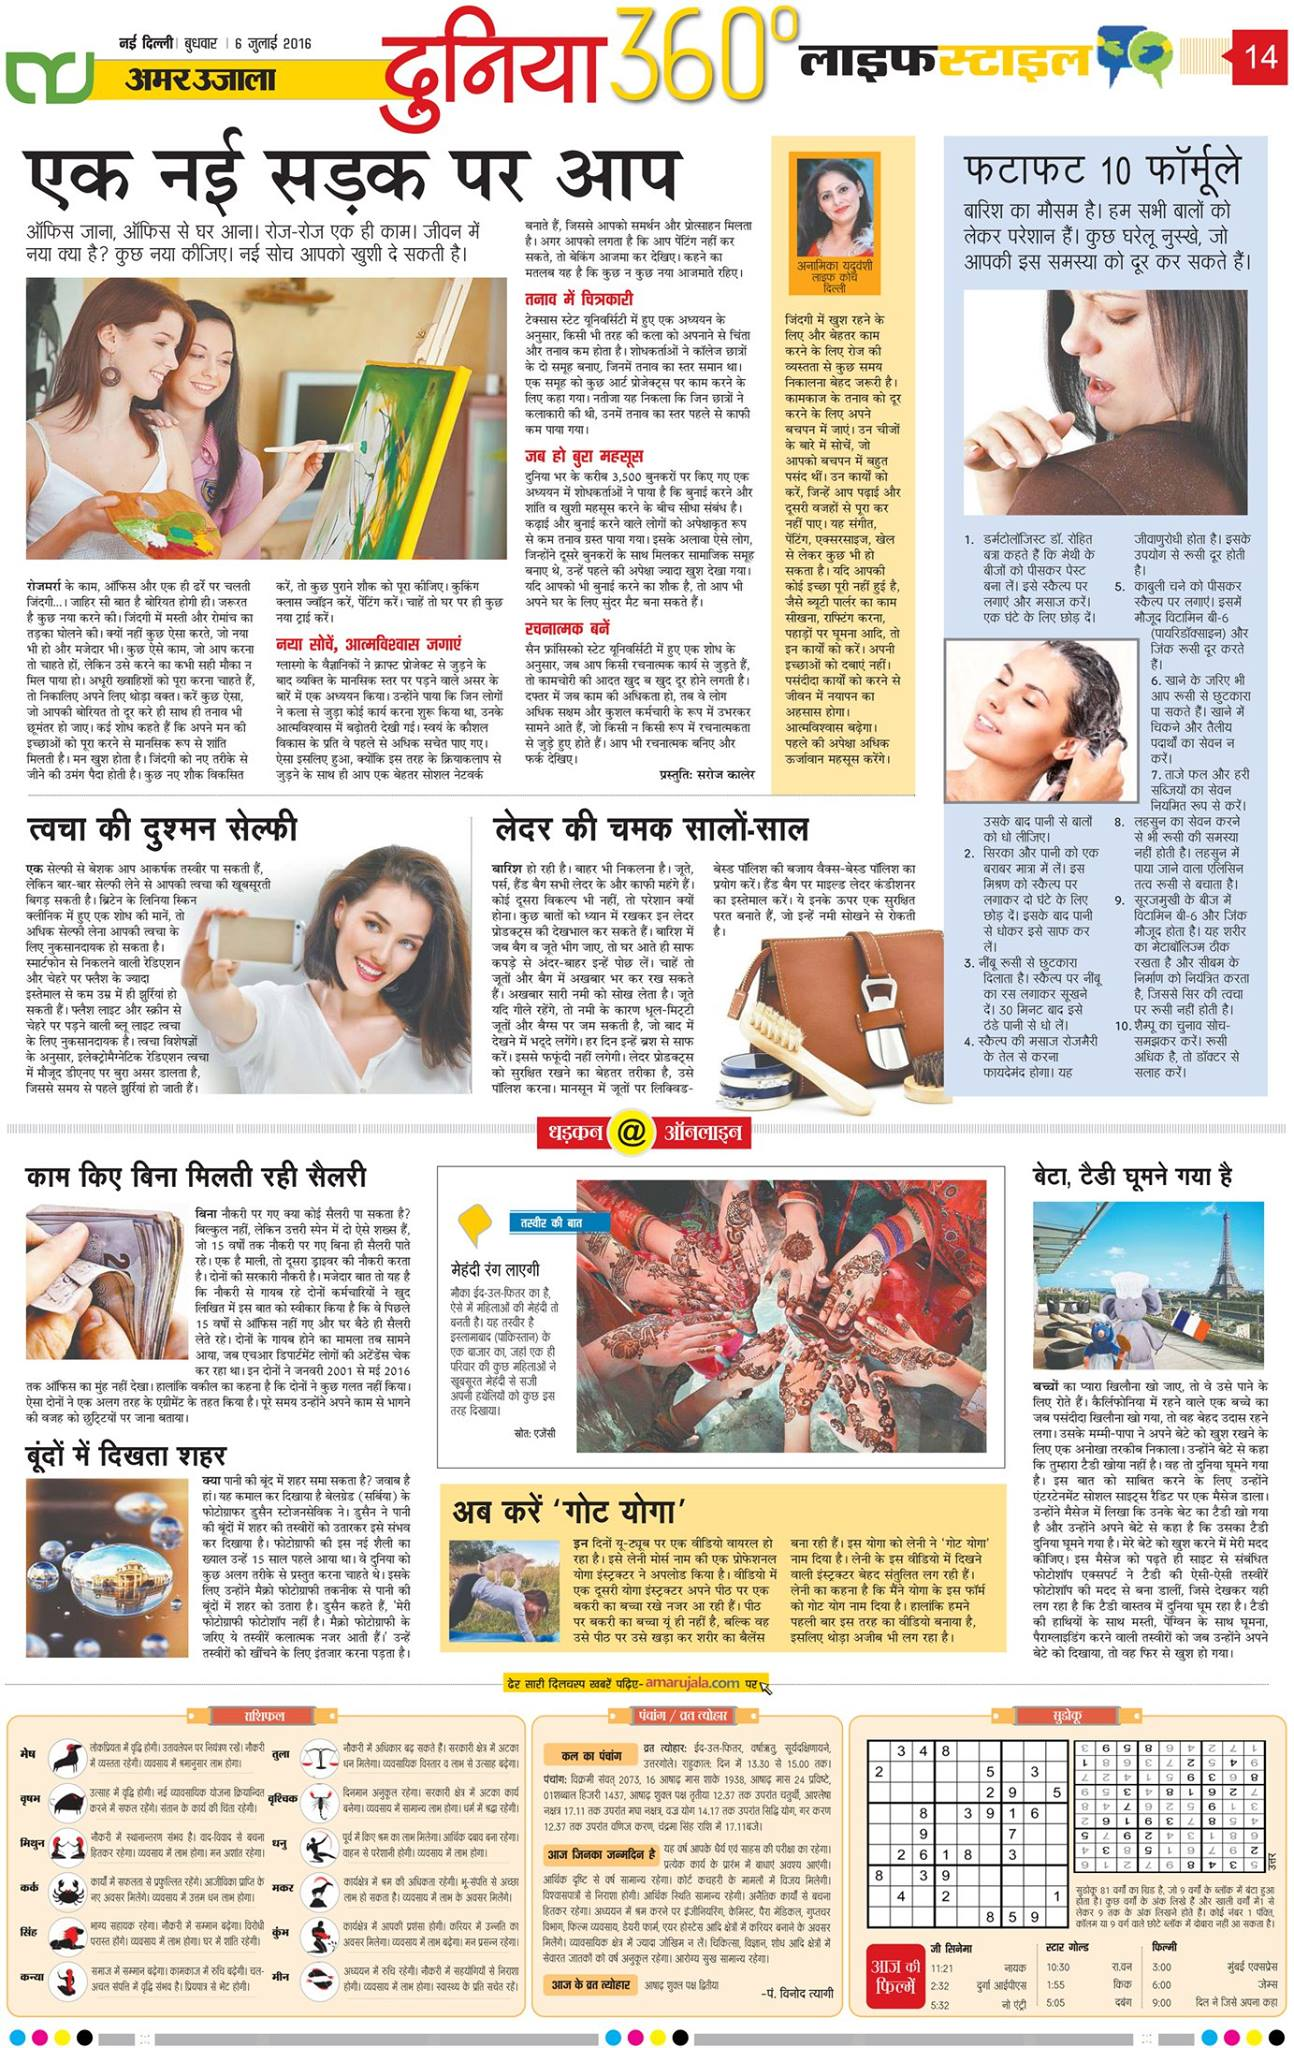 Amar Ujala, Pg 14 dated July 6, 2016